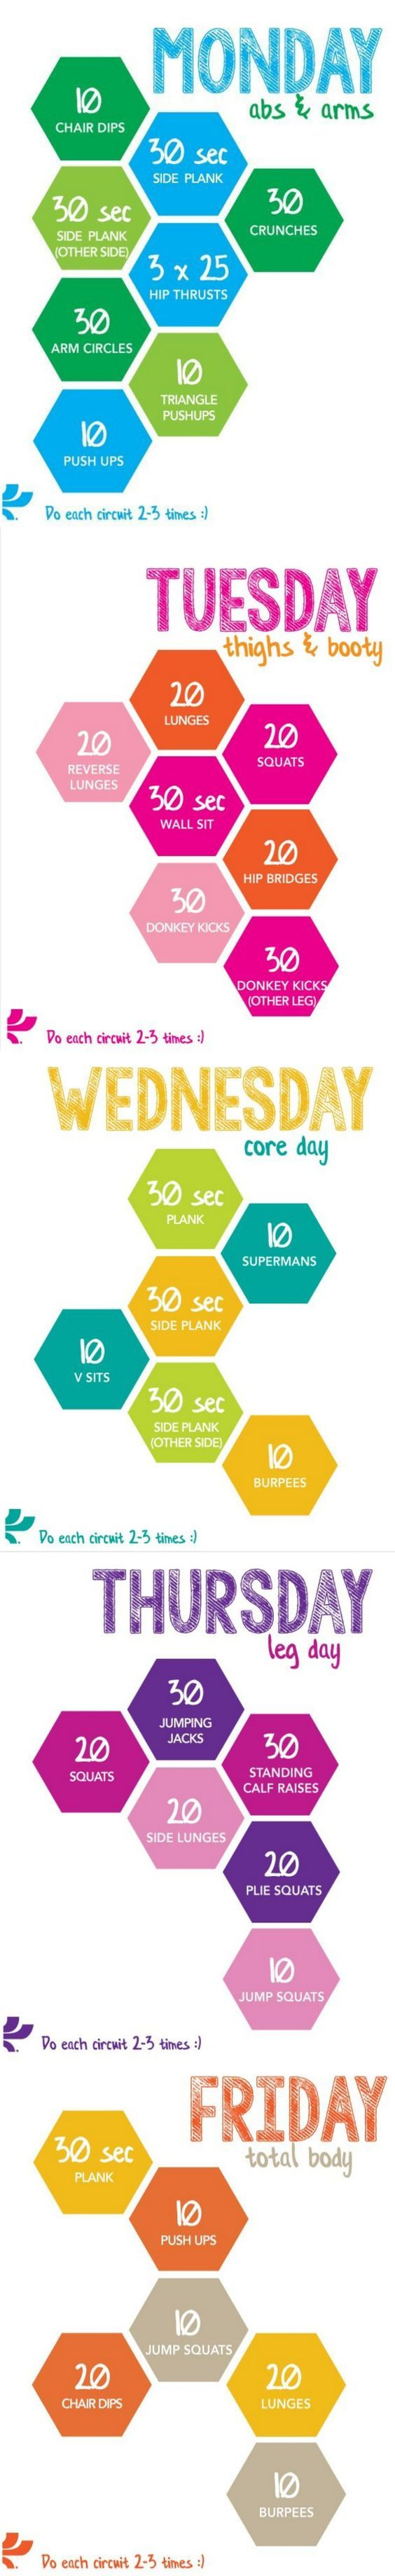 Monday-Friday circuit, focusing on different body areas each day.